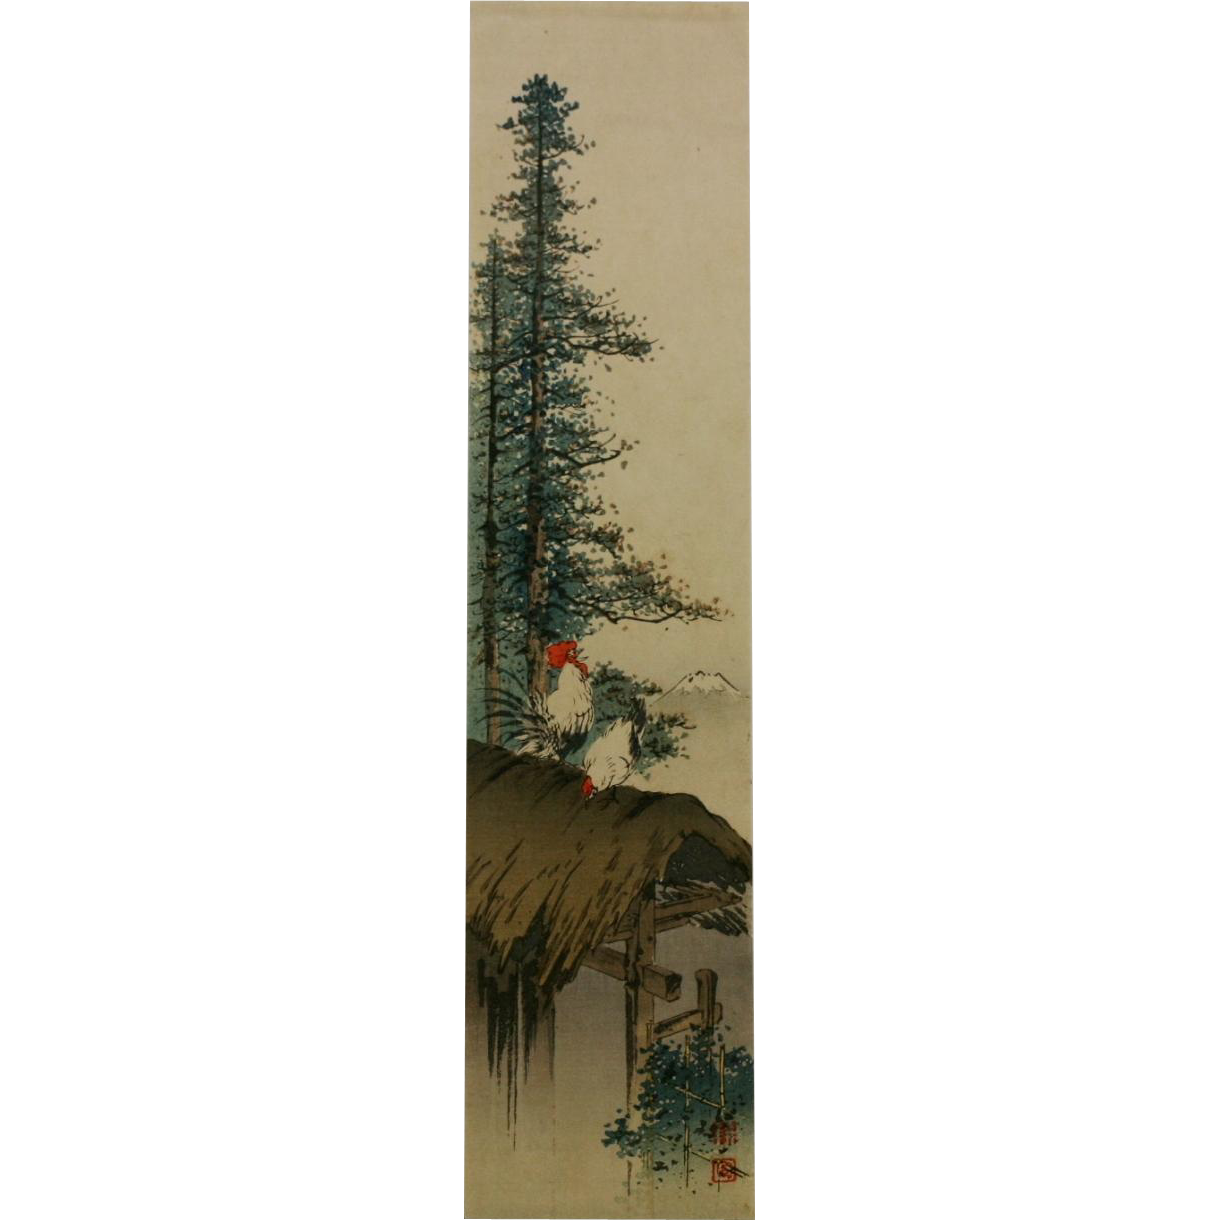 """Koho Shoda (1871-1946), Japanese Woodblock 'Chickens on Roof and Mount Fuji' 13.25"""" x 3.25"""" Pillar Print - Red Tag Sale Item"""